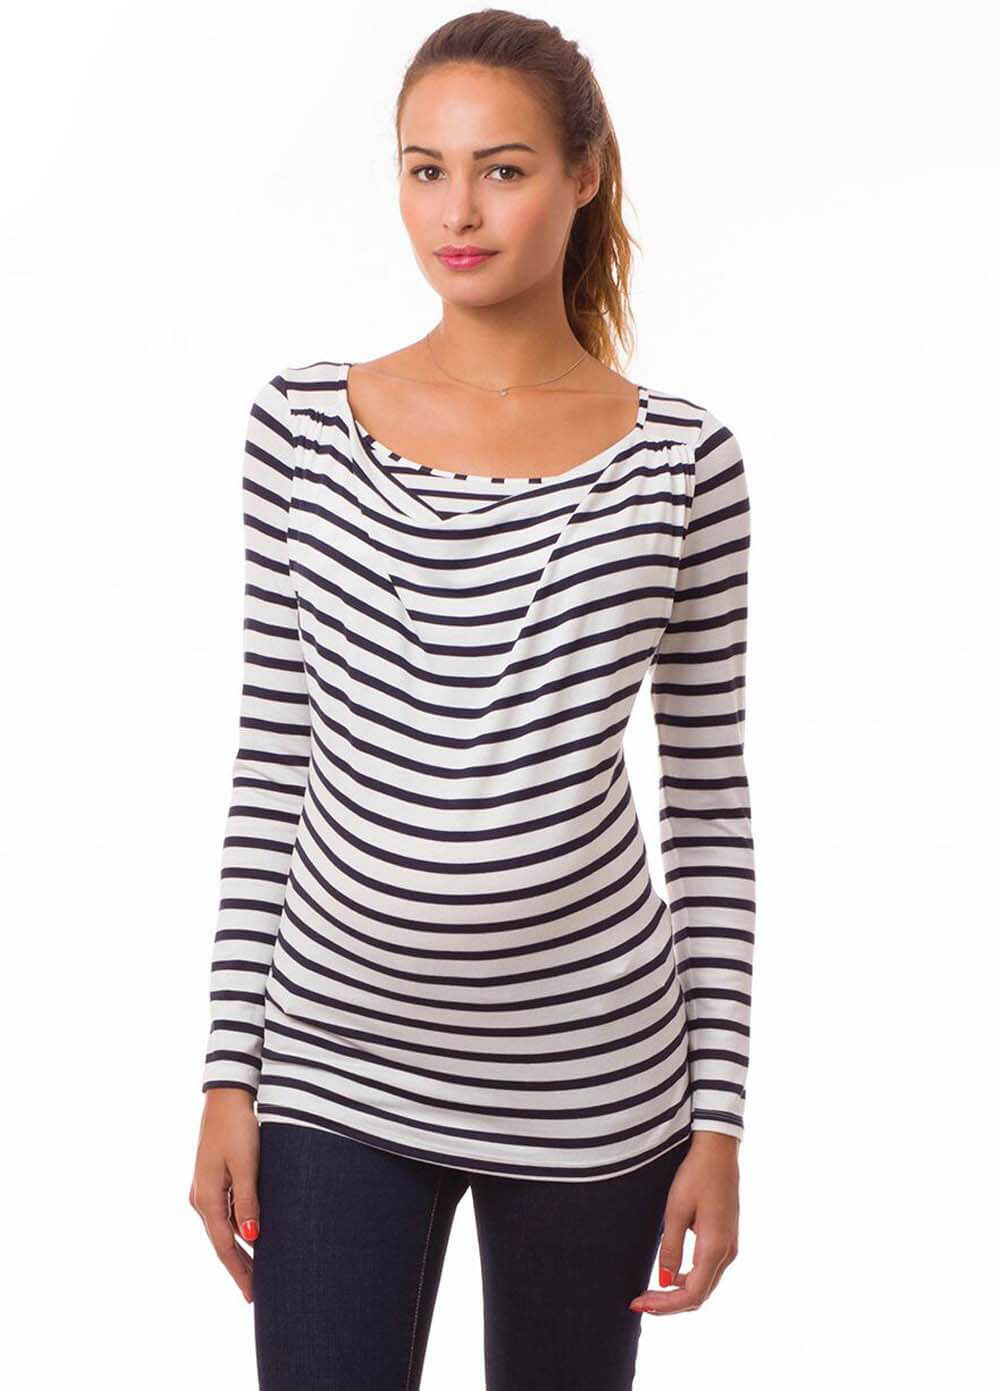 Pomkin - Milkizzy Prisca Breastfeeding Top in Nautical Stripes